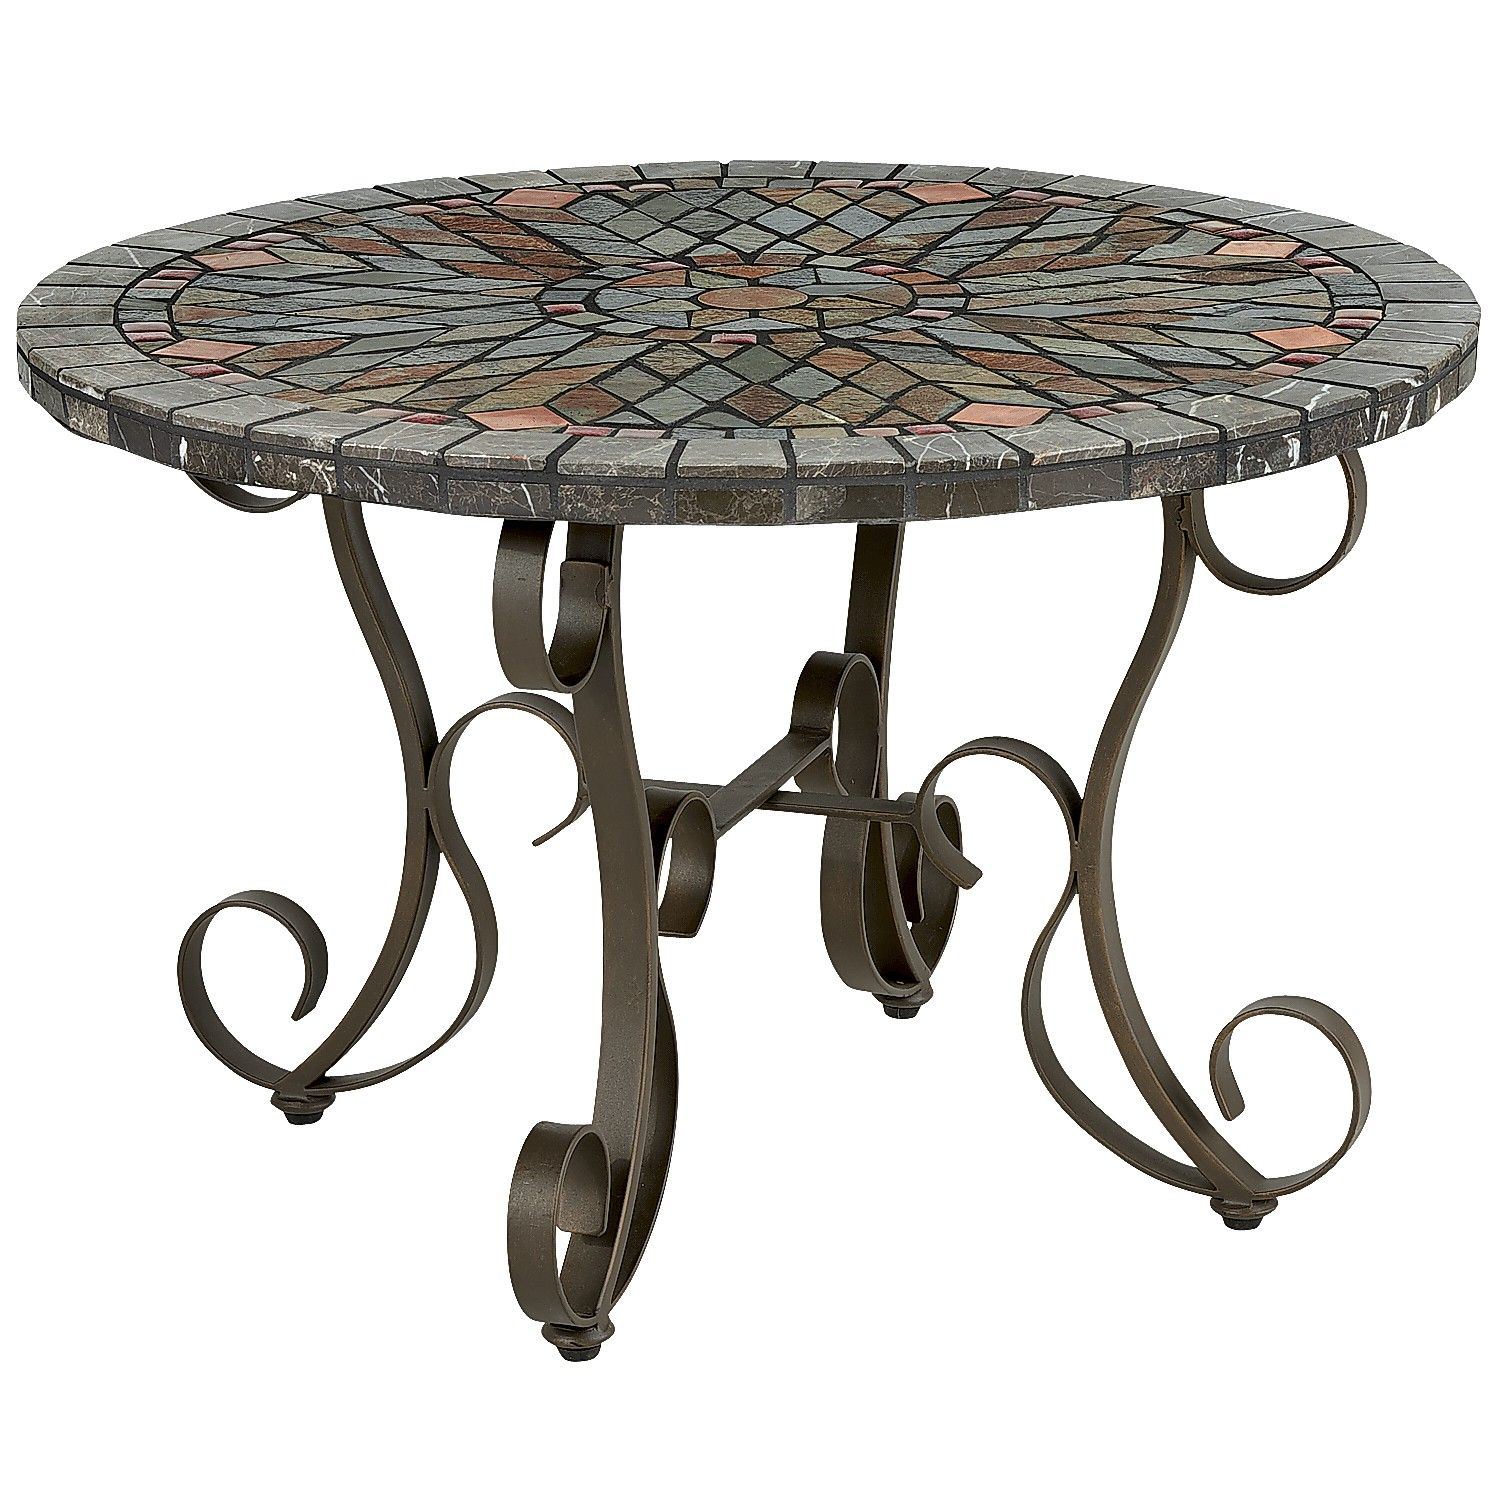 Multi Colored Verazze Mosaic Coffee Table Steel Outdoor inside sizing 1500 X 1500